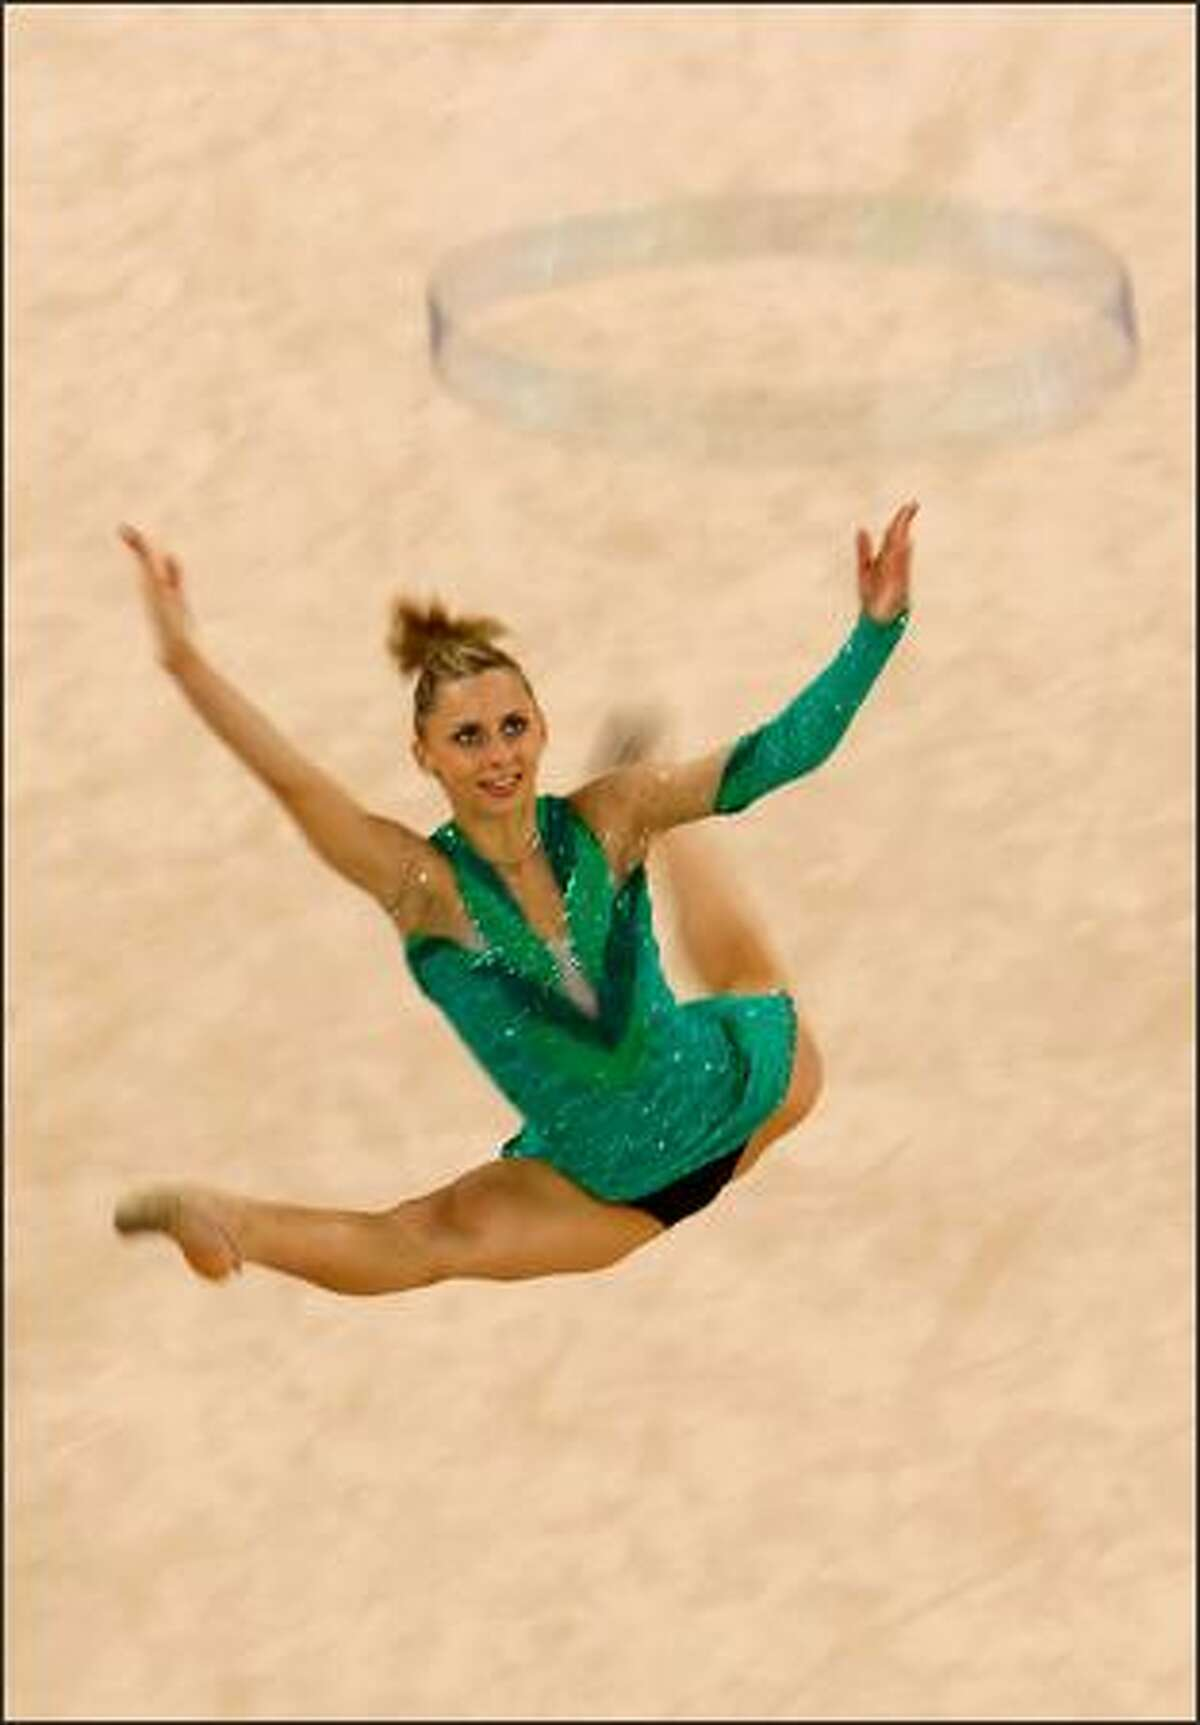 BEIJING - AUGUST 21: Caroline Weber of Austria competes in the Individual All-Around Qualification round held at the Beijing University of Technology Gymnasium during Day 13 of the Beijing 2008 Olympic Games on August 21, 2008 in Beijing, China.